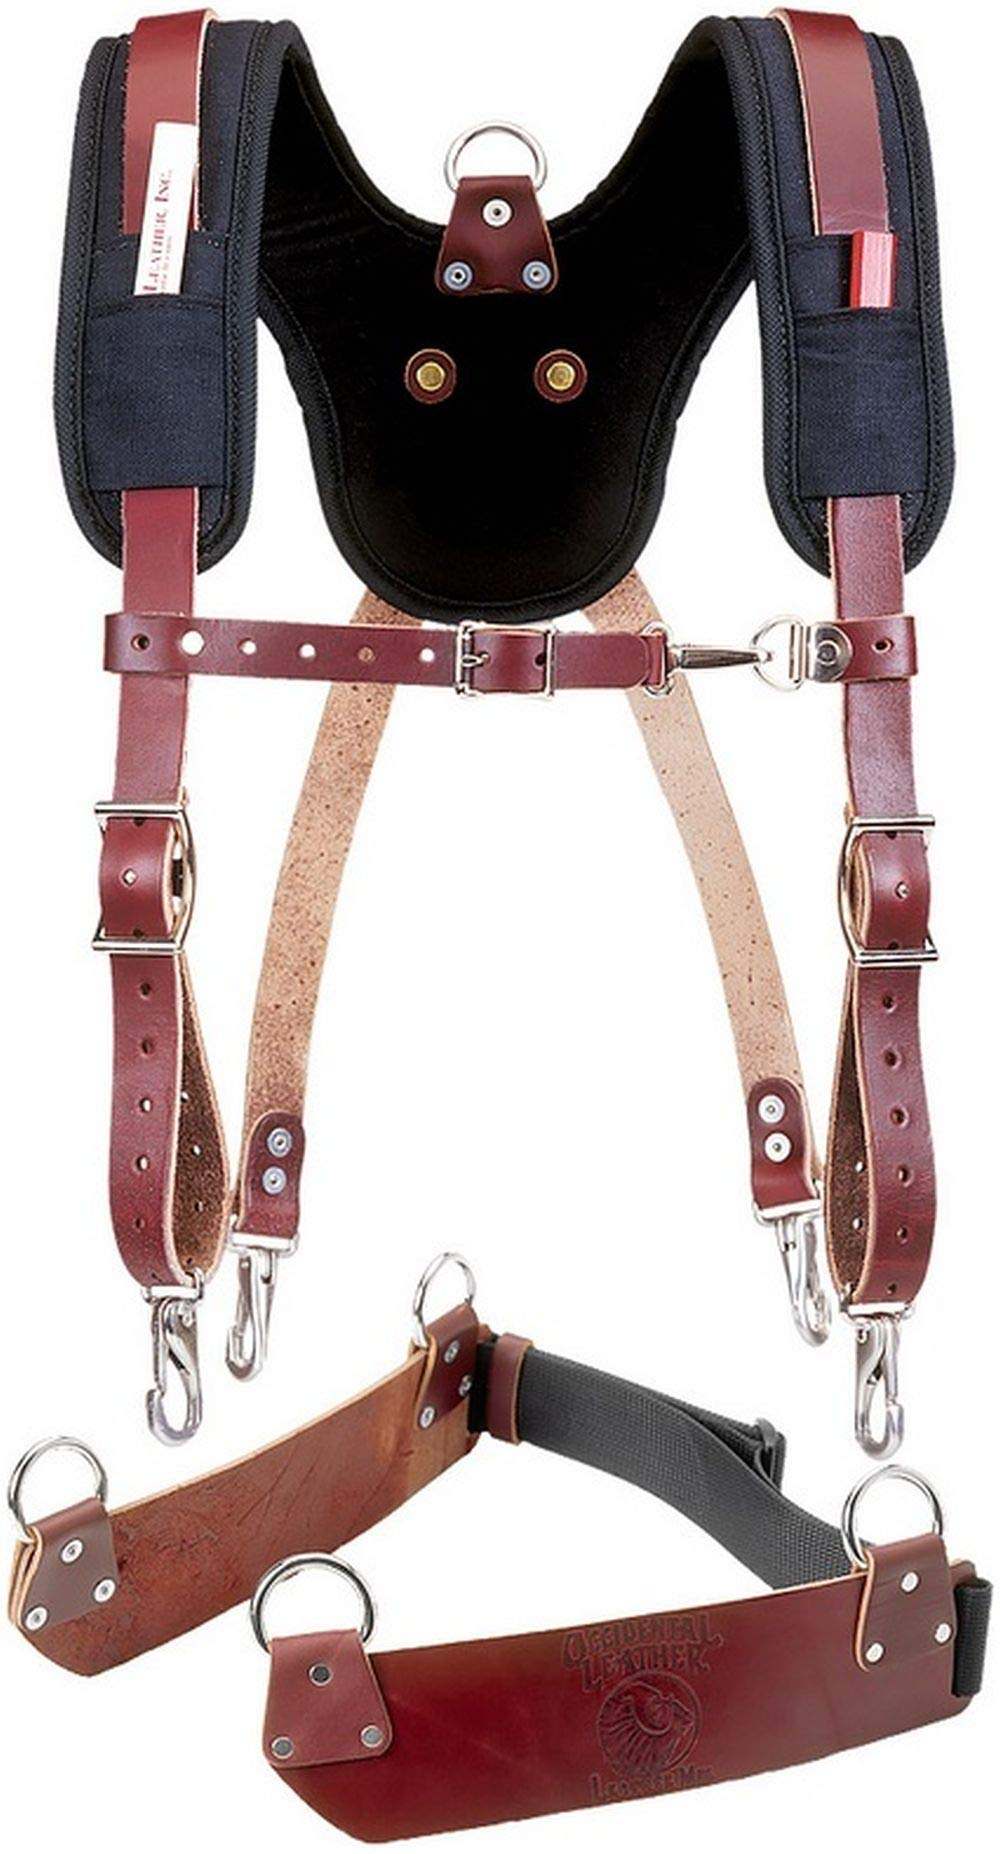 Occidental Leather 5595 Beltless Retro Package by Occidental Leather (Image #1)